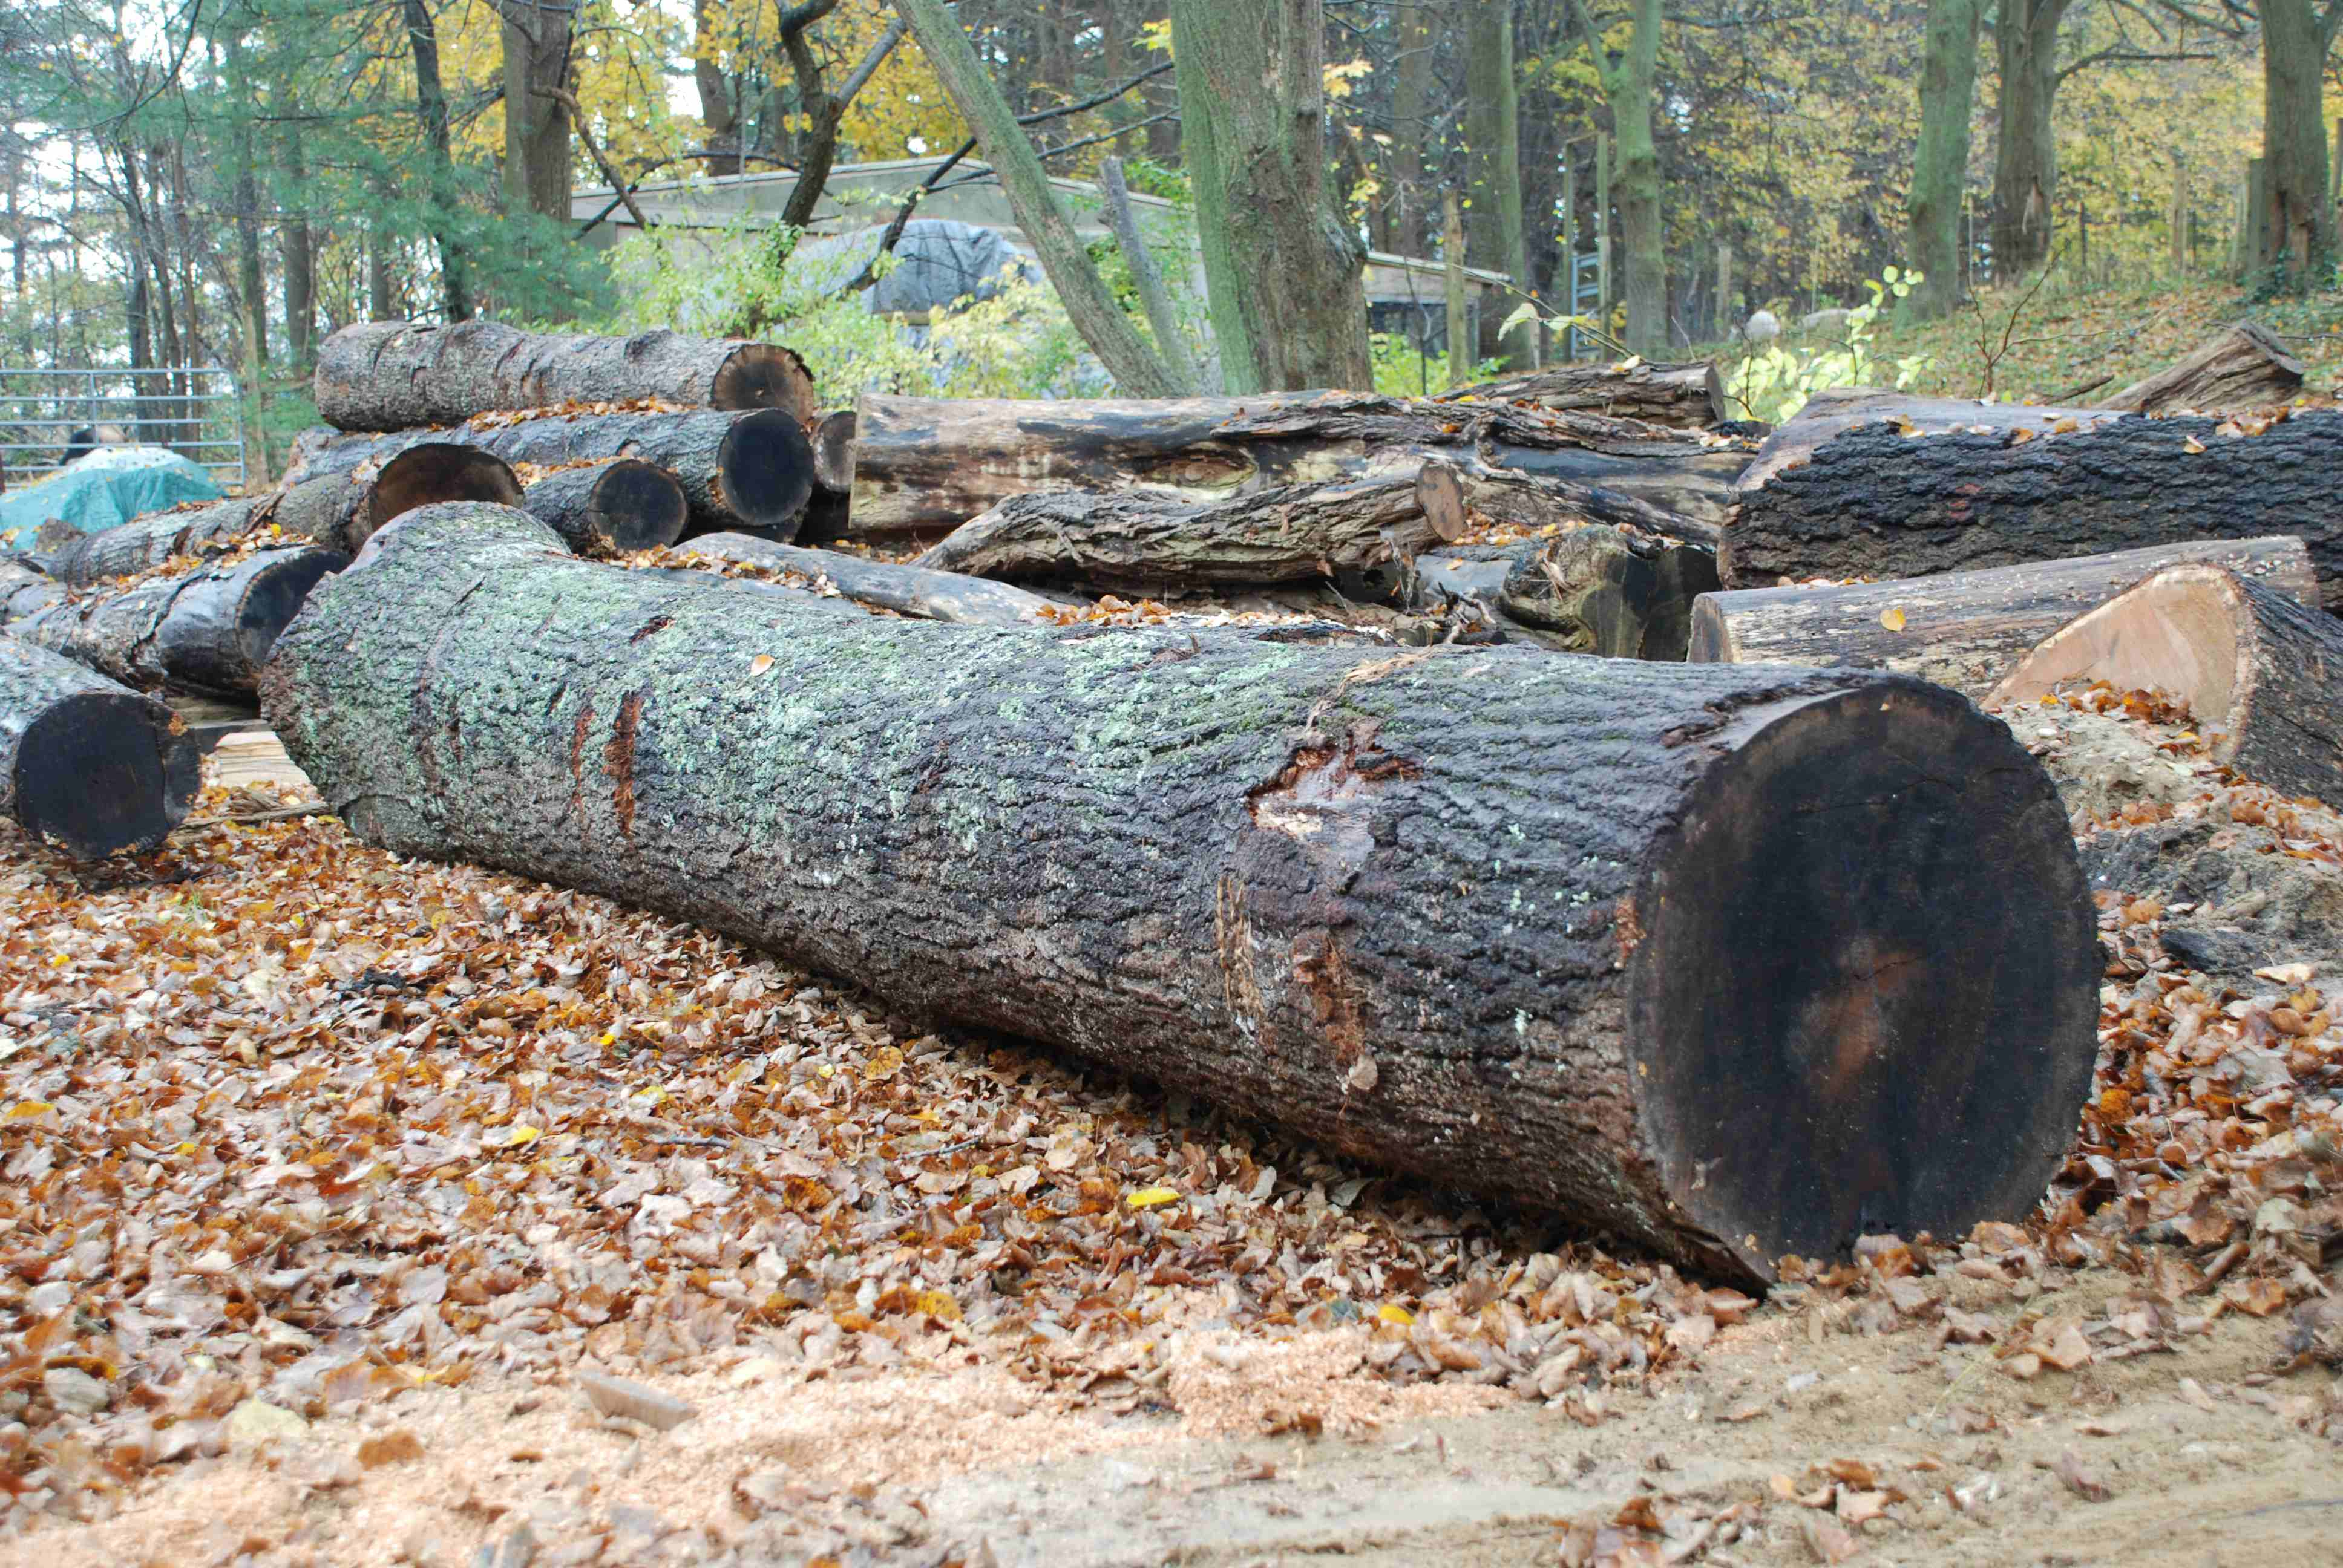 Log dreams meaning - Interpretation and Meaning